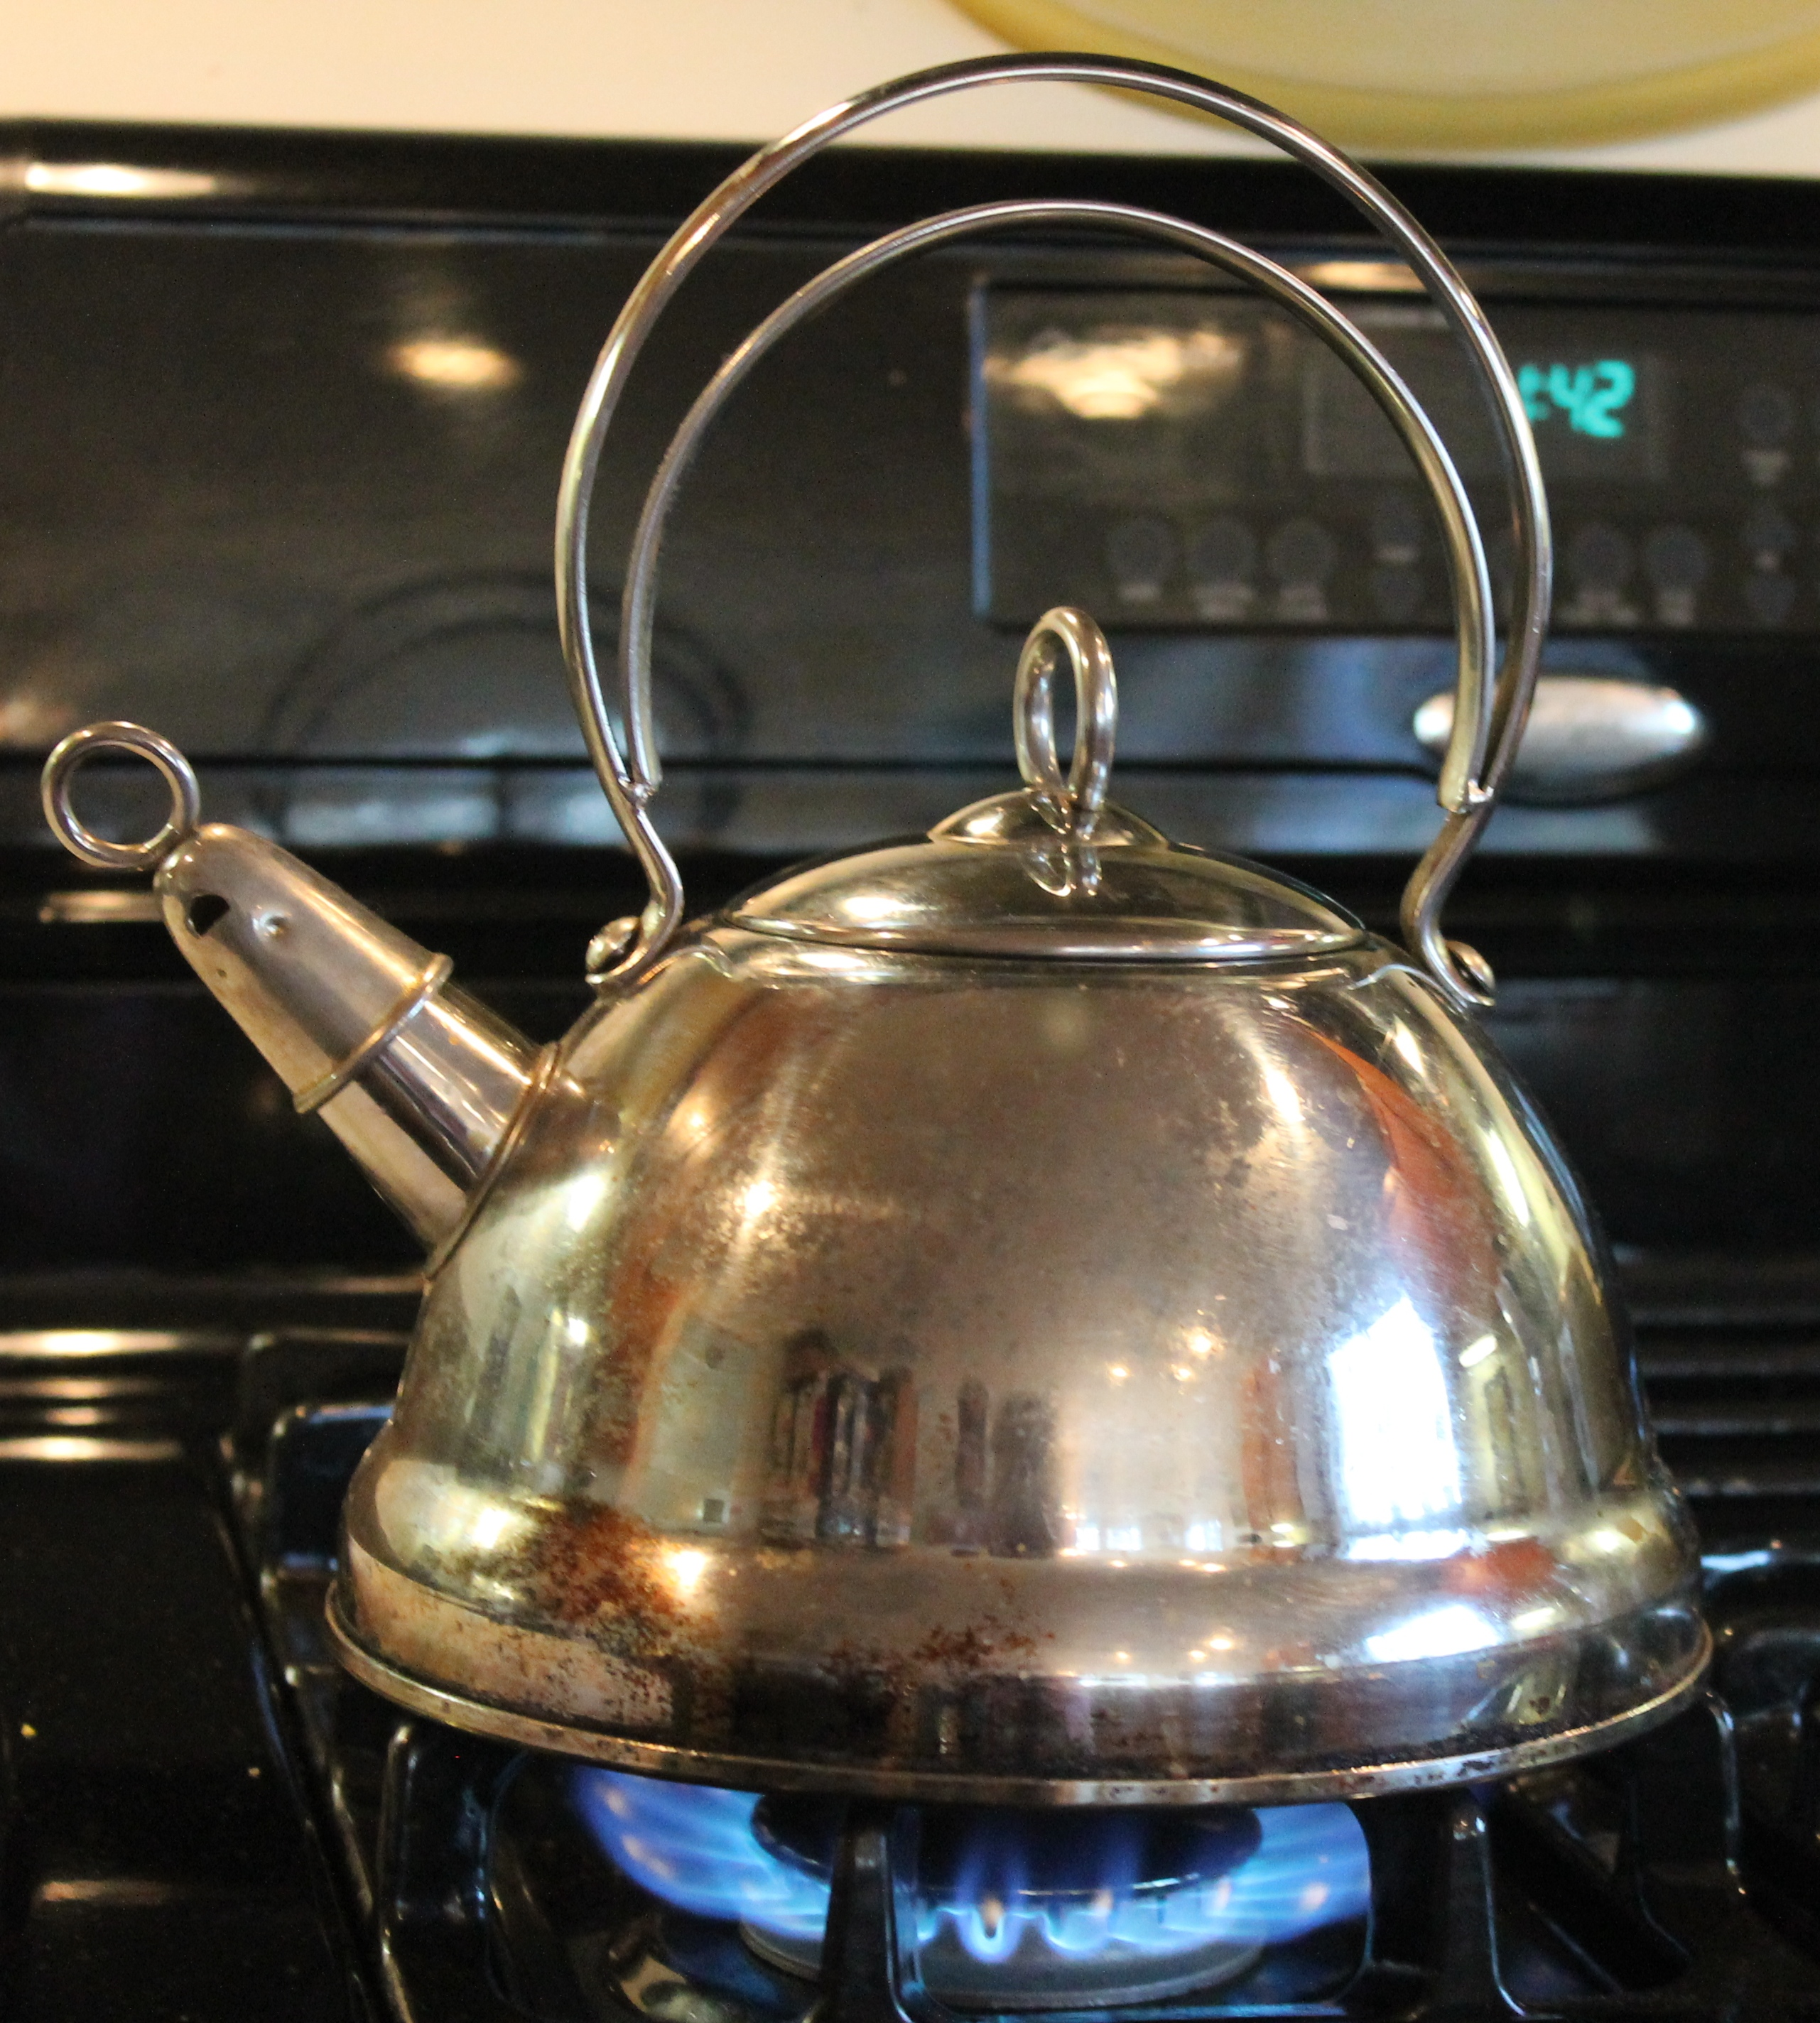 Pin On Teiere E Caffettiere Teapots And